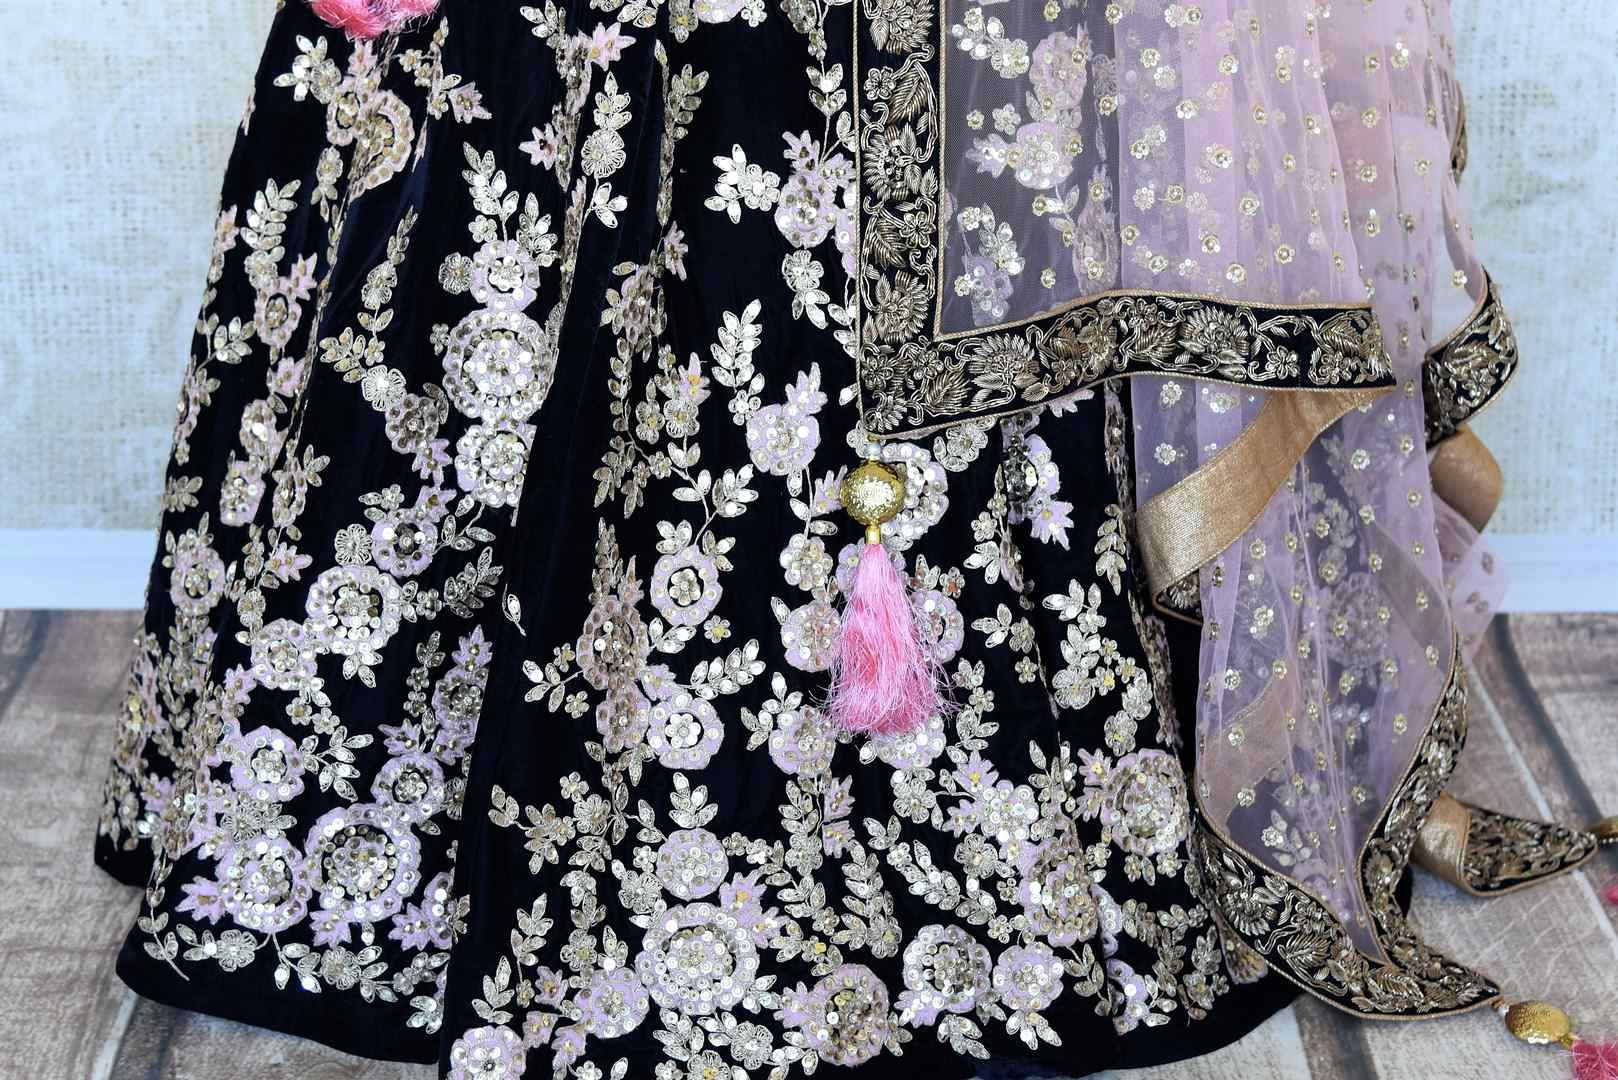 Buy dark blue embroidered velvet lehenga online in USA with pink dupatta. The lehenga is perfect for rich Indian ethnic look at weddings. Make your Indian clothing collection exquisite with beautiful Indian designer wedding lehengas available at Pure Elegance clothing store in USA or shop online.-lehenga skirt